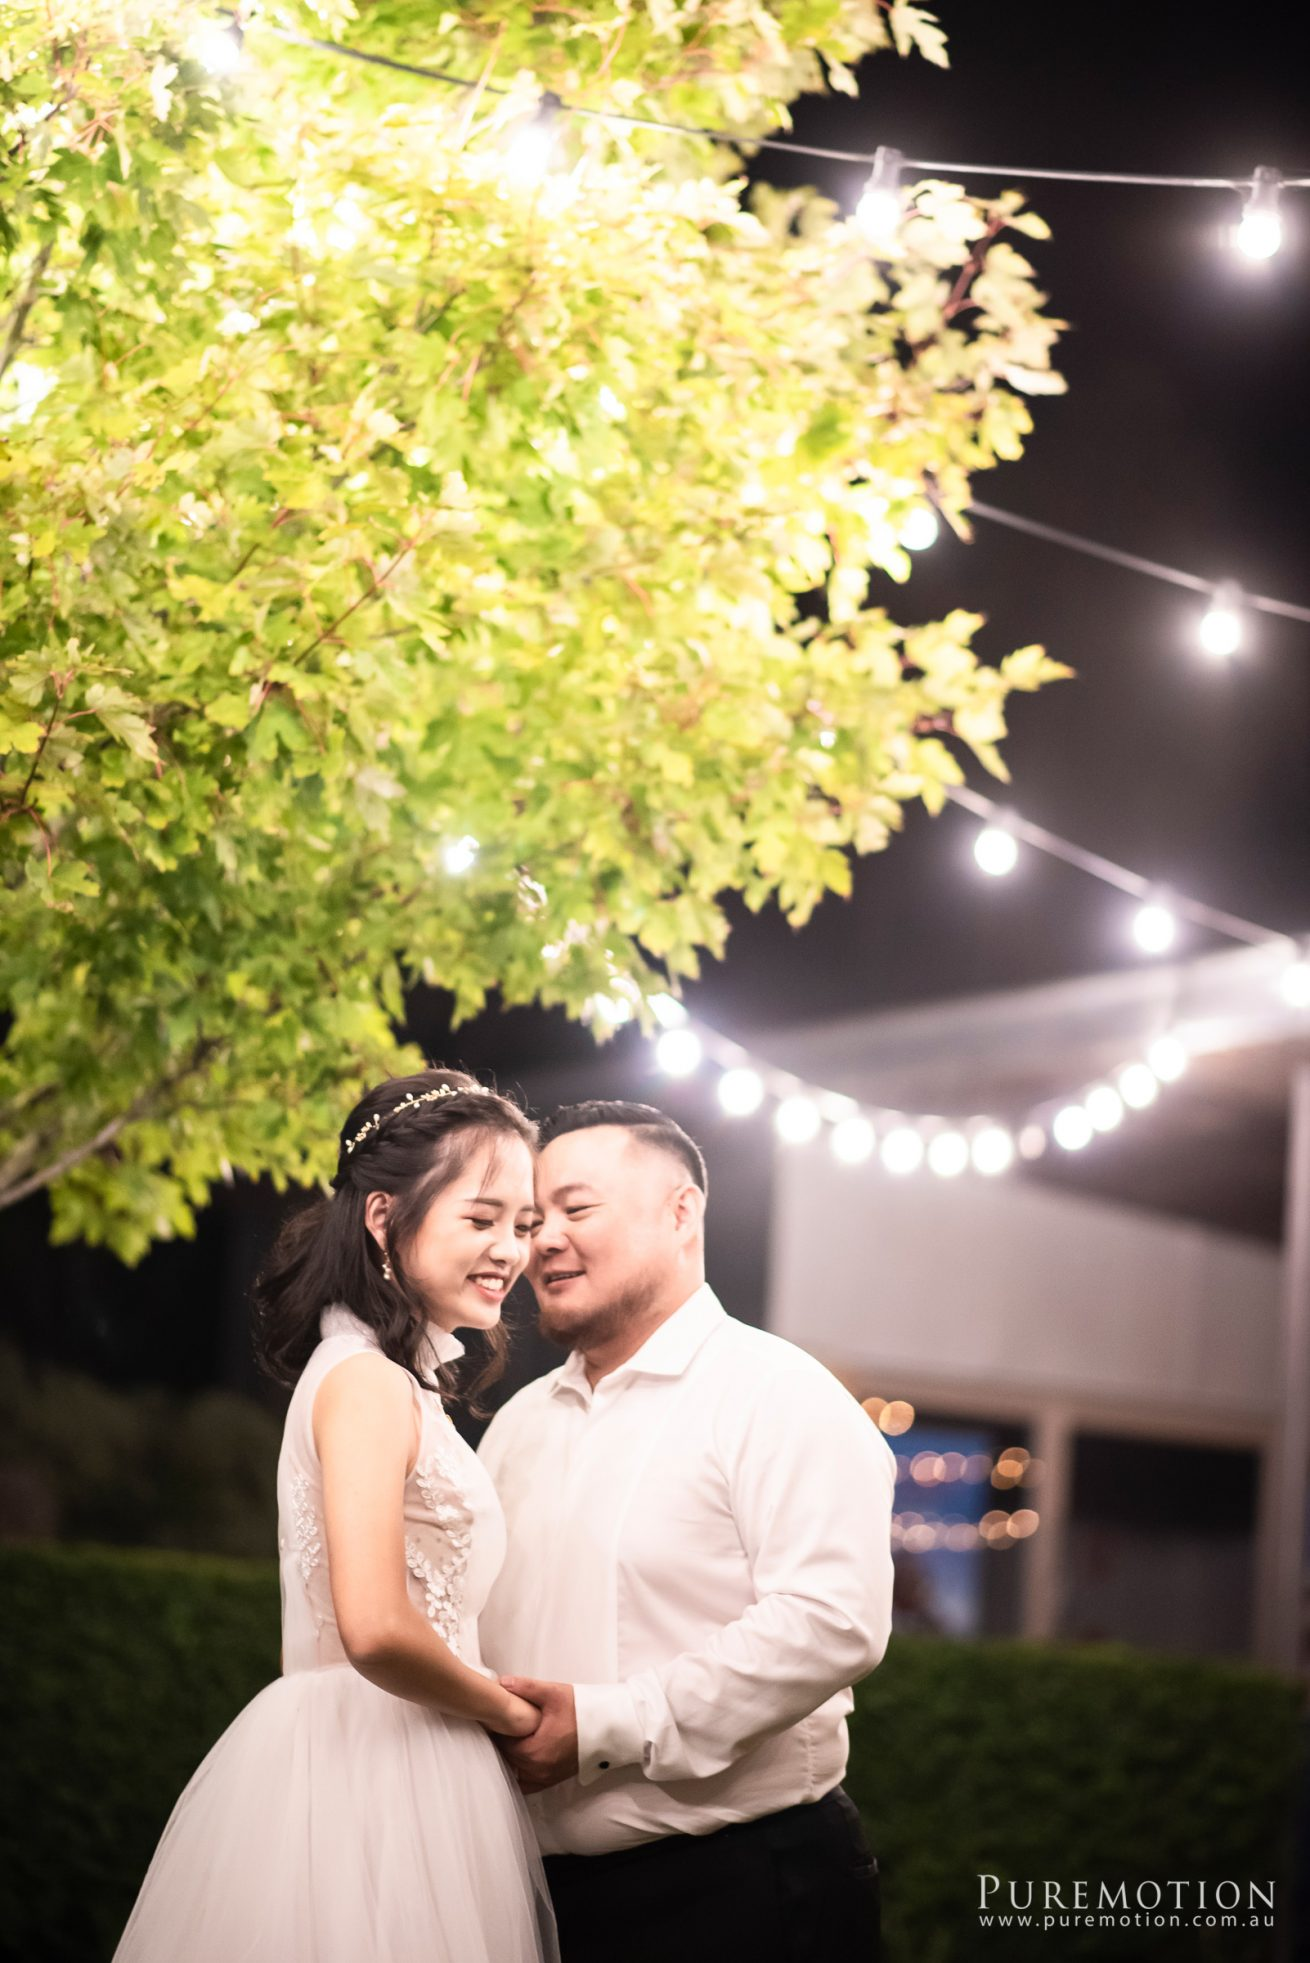 190323 Puremotion Wedding Photography Kooroomba Lavender Alex Huang ArielRico_Edited-0092